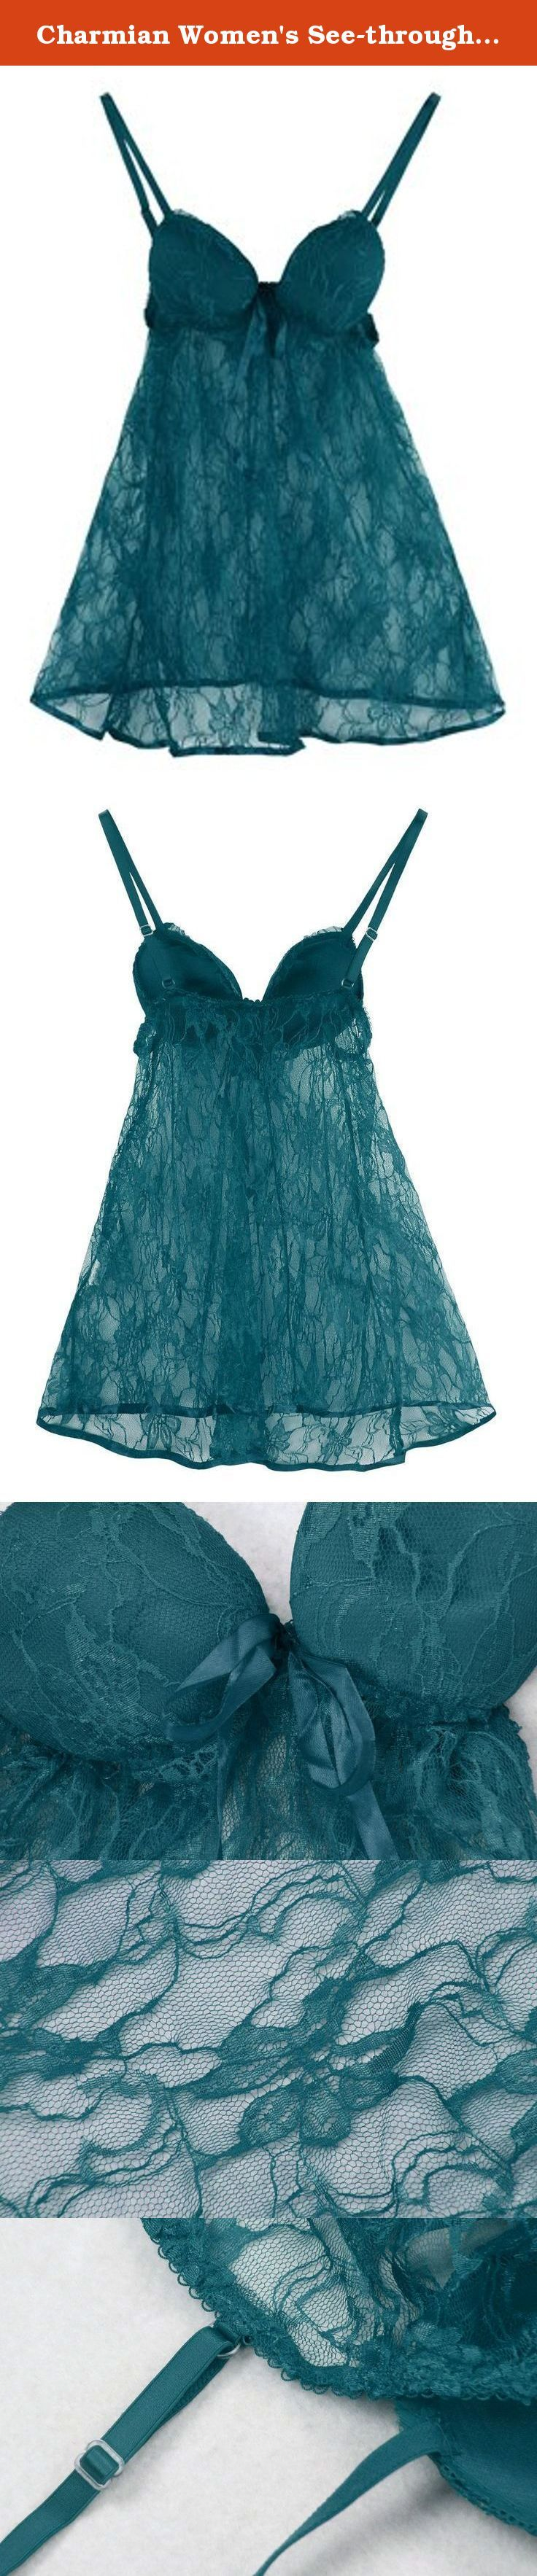 Charmian Women's See-through Lace Babydoll Sleepwear Chemise Lingerie Outfits Dark Green XX-Large. Sexy Lace Babydoll with Padded cups, Adjustable Straps, and Ribbon Trim, Matching g-string. About Material 90% Polyester 10% Spandex Guide to Choose Right Size The Size Chart Above is Measured of the Babydoll Lingerie, NOT YOUR BODY SIZE. Please Measure your Size Before Order, and Choose the Right Size Above that Fit you. About Size Chart Size Chart(cm) M/Under Bust: 70-85, Length from...